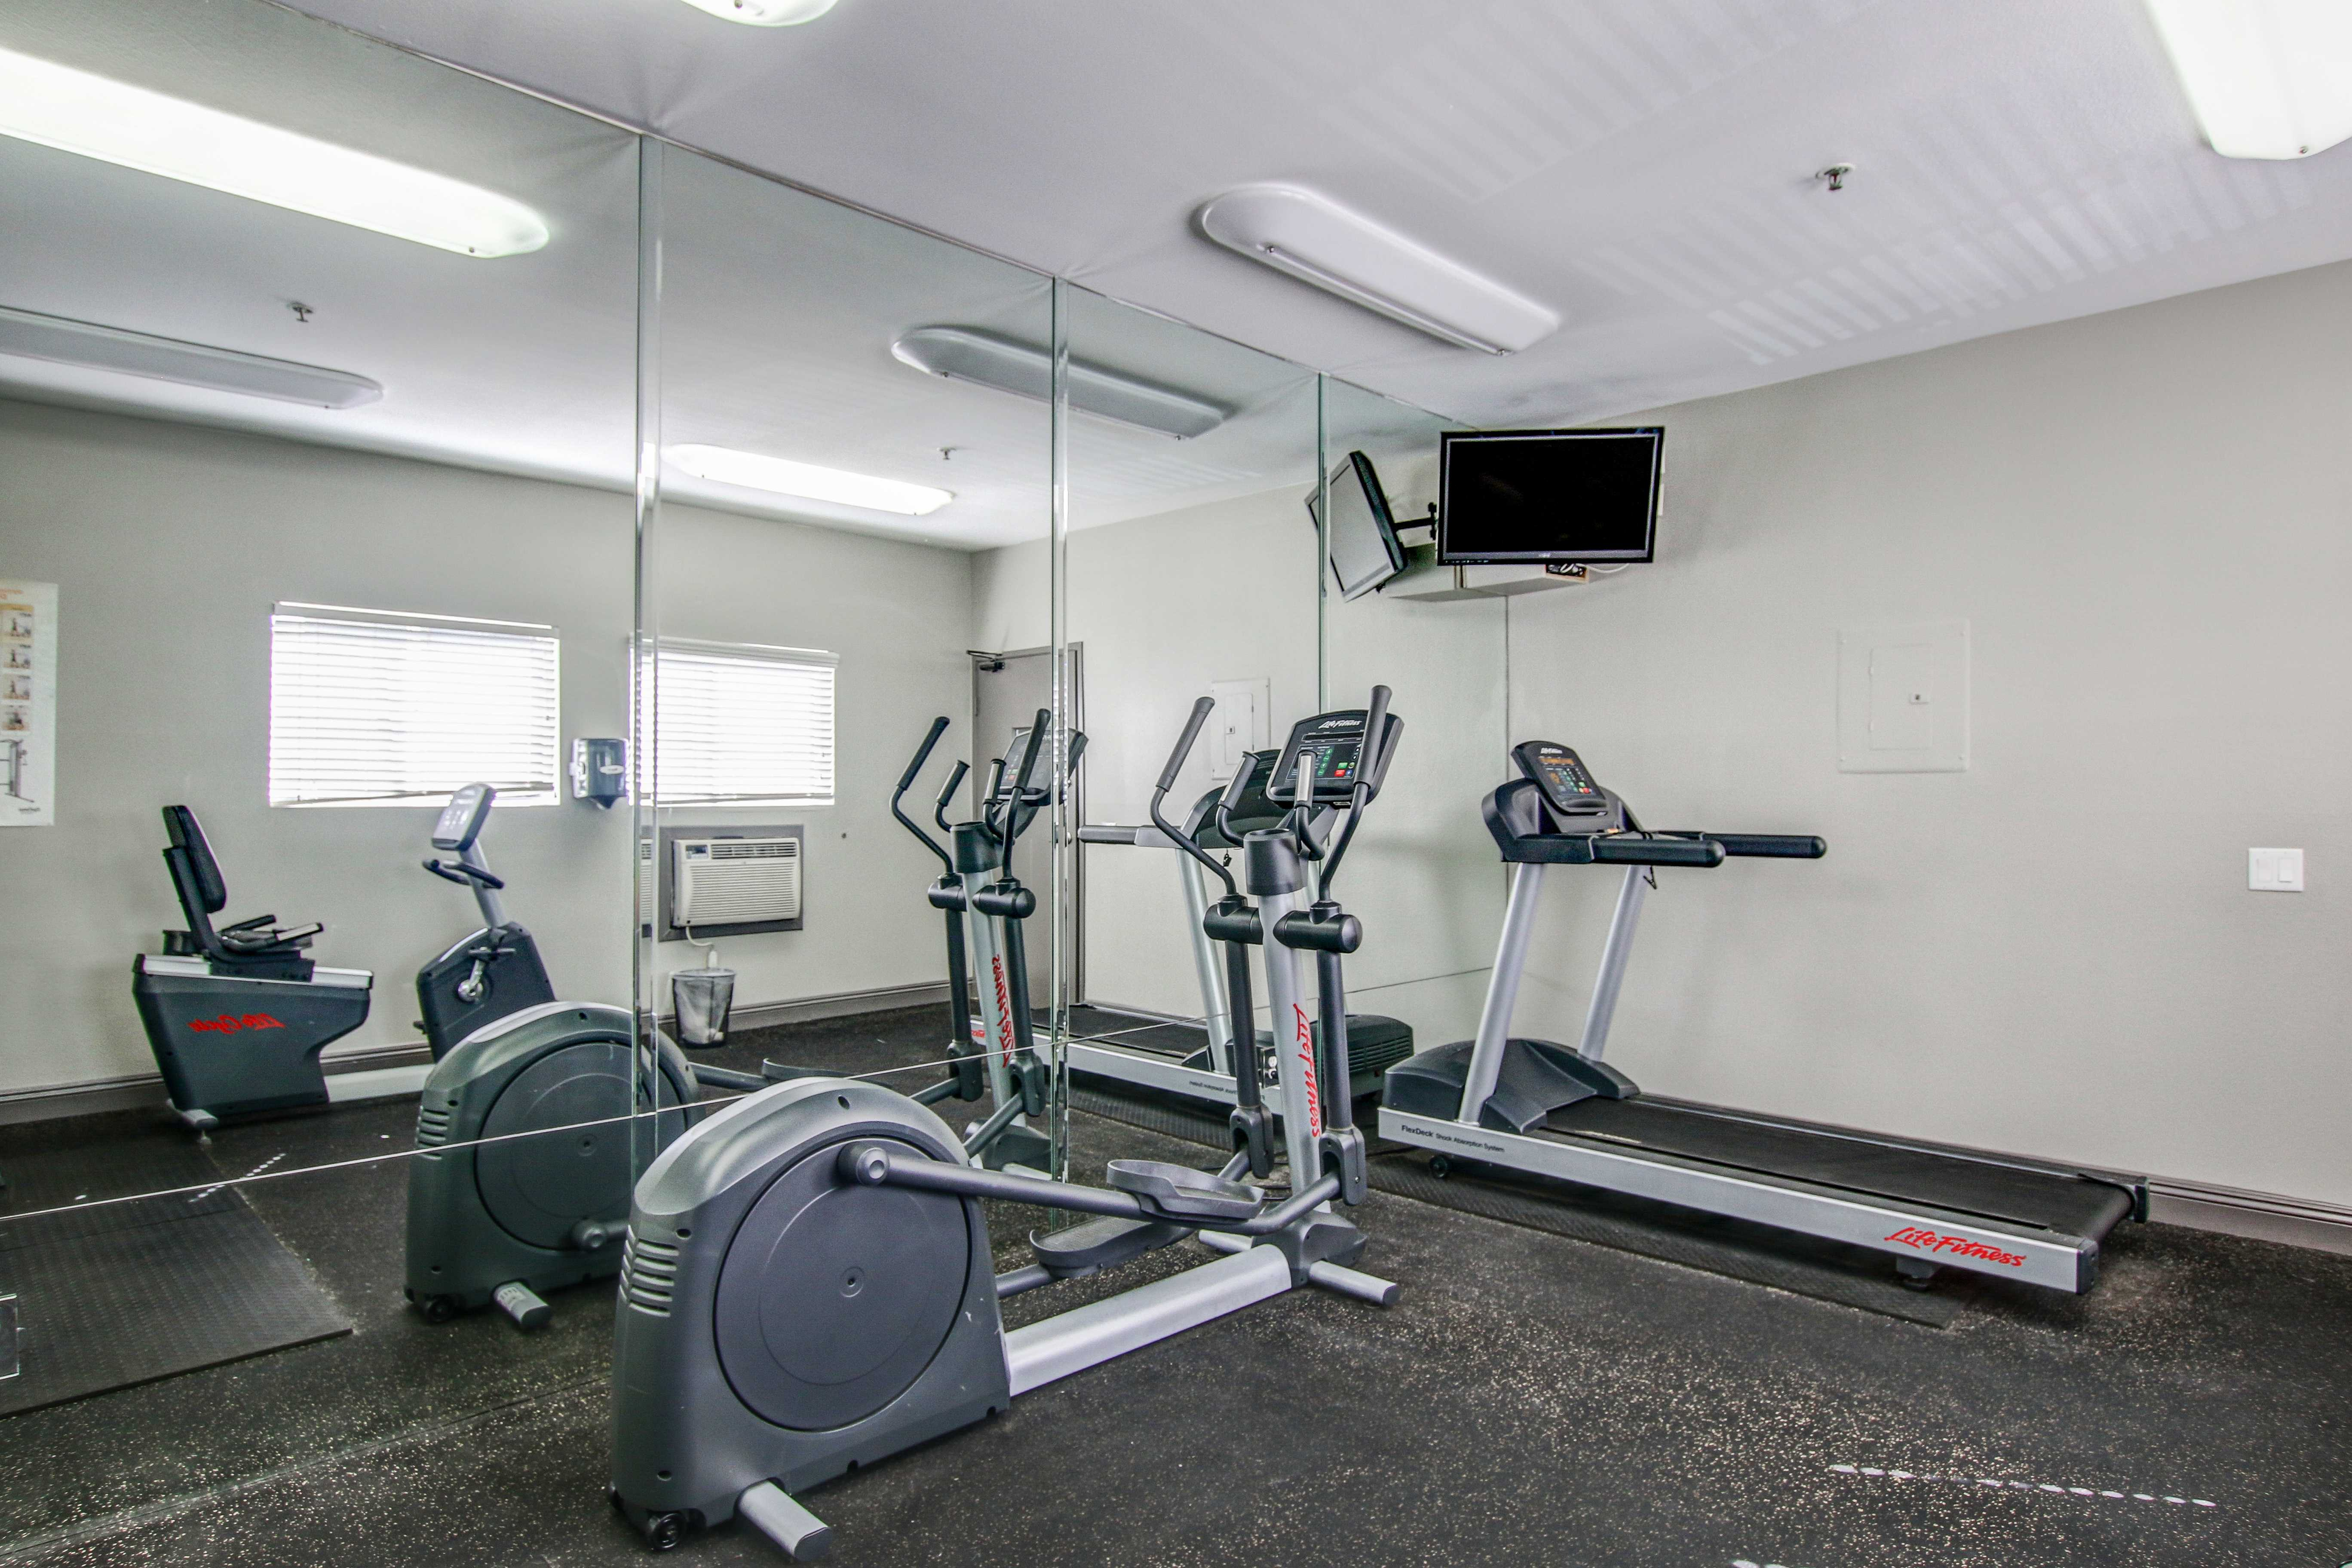 Fitness center at apartments in San Diego, California